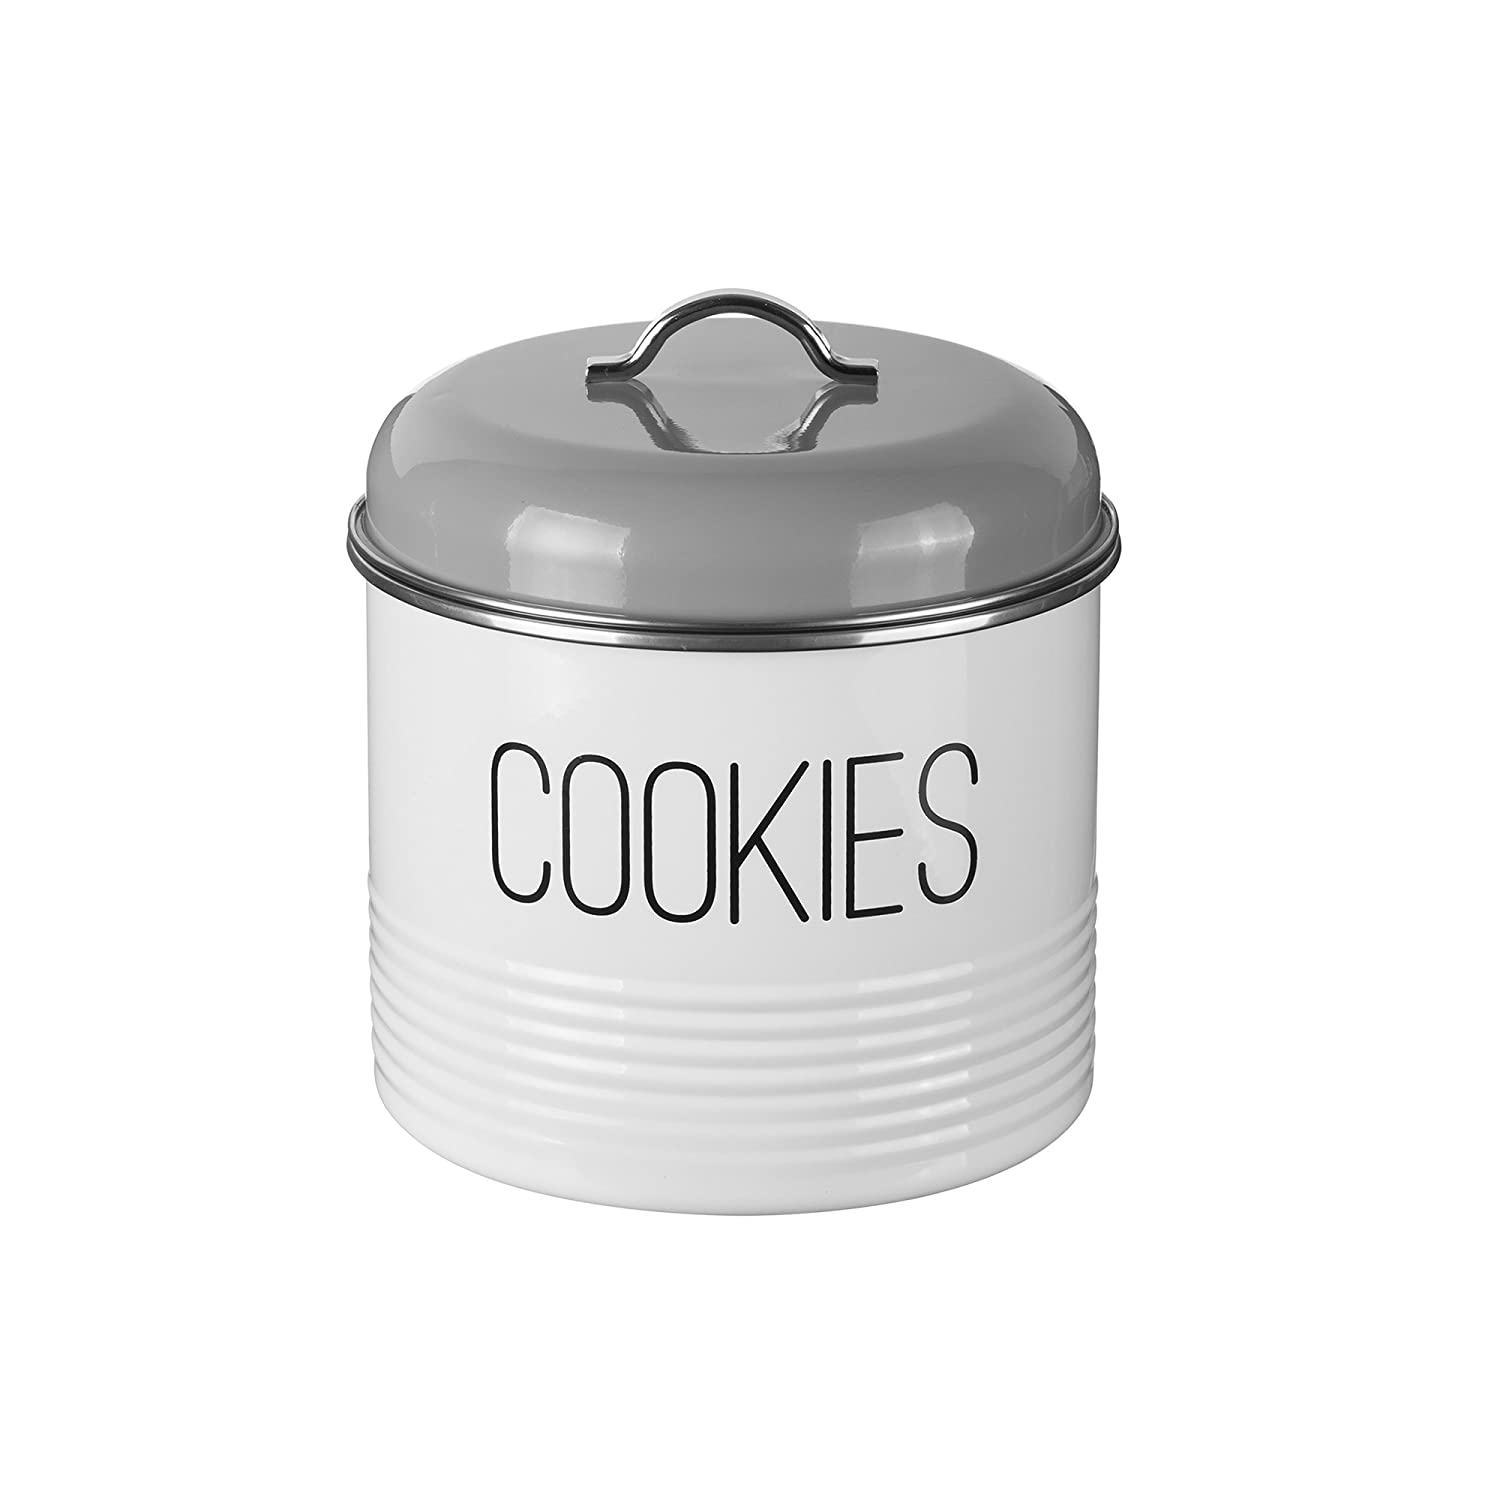 Typhoon 1401.672 Vintage Mayfair - Molde para galletas (metal, 3,3 L), color gris